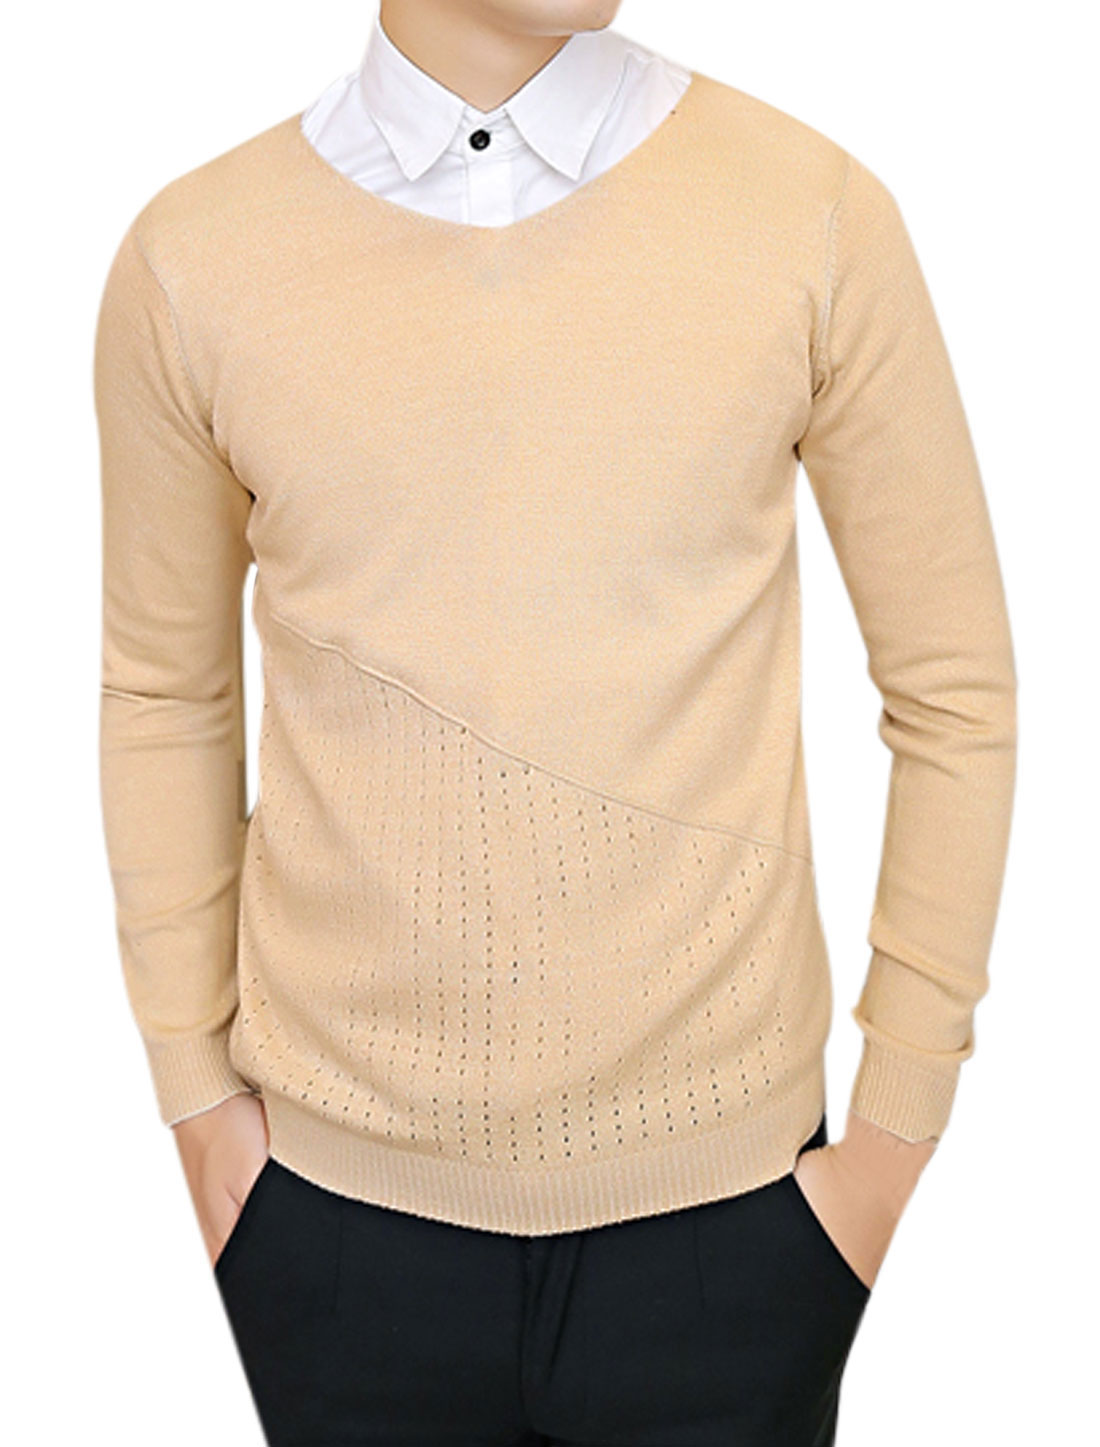 Hollow Out Design V Neck Chic Beige Sweater for Men S